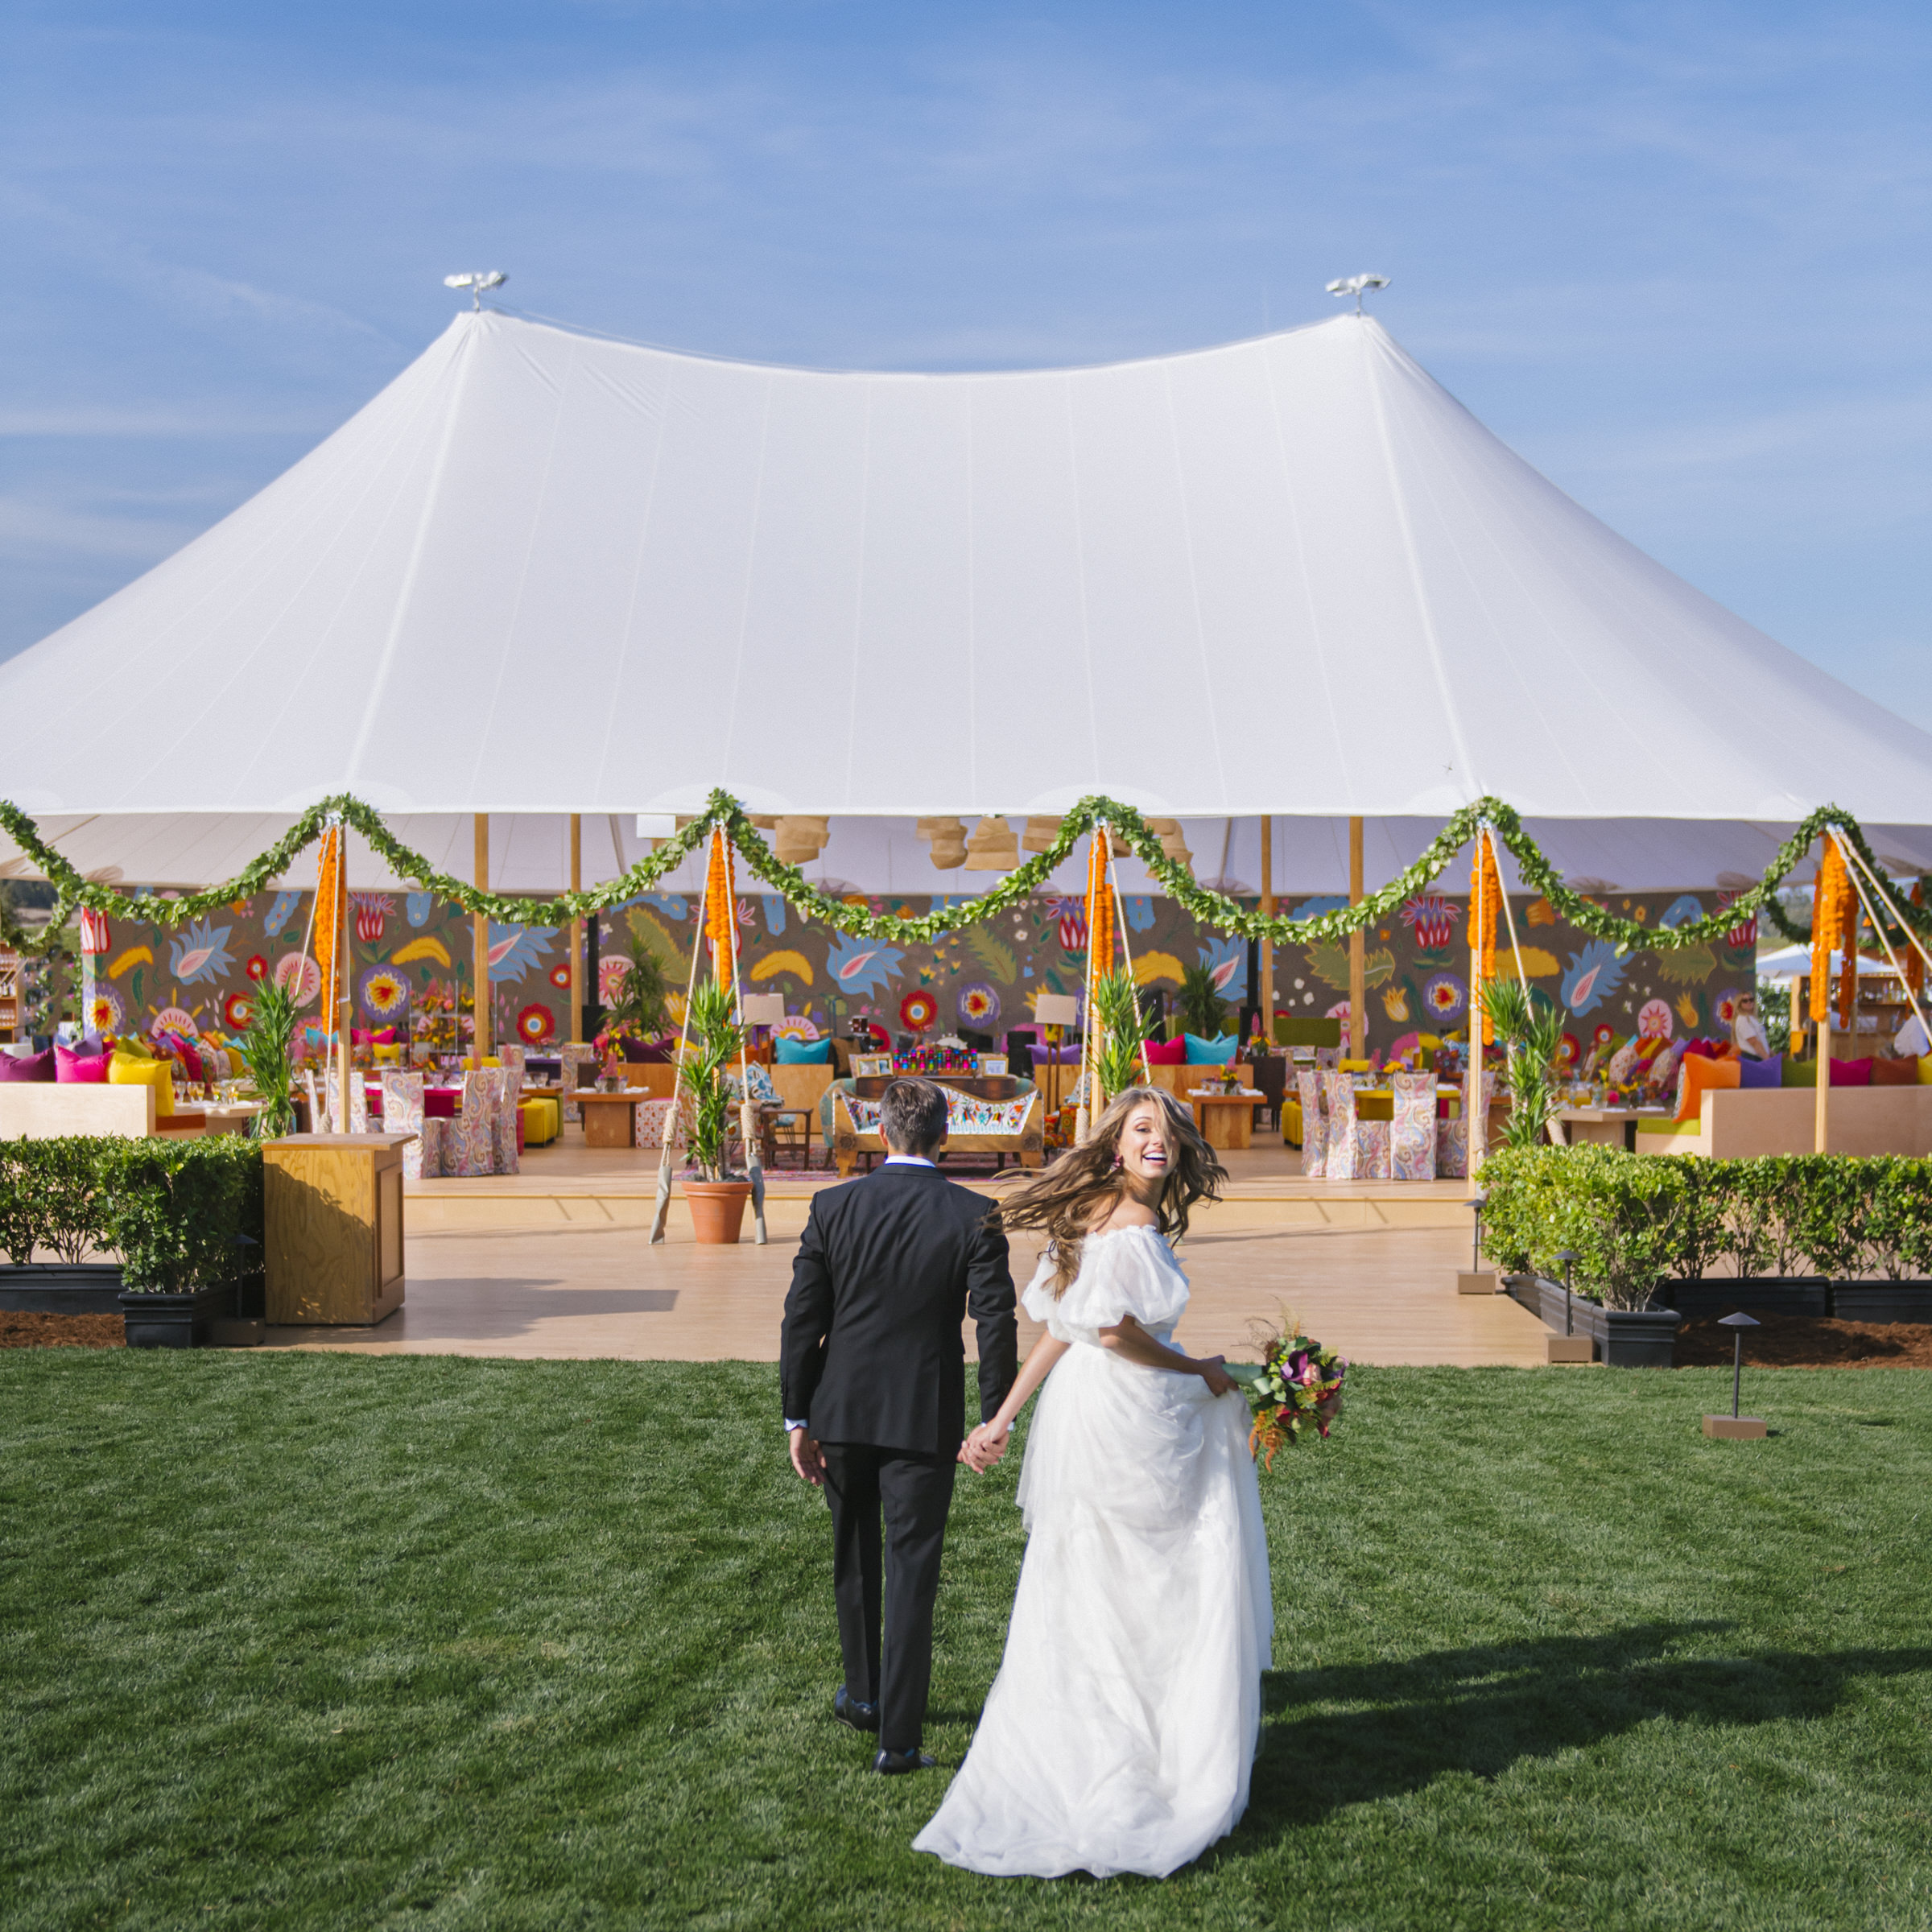 couple-walks-toward-tent-with-whimsical-backdrop-amy-and-stuart-photography